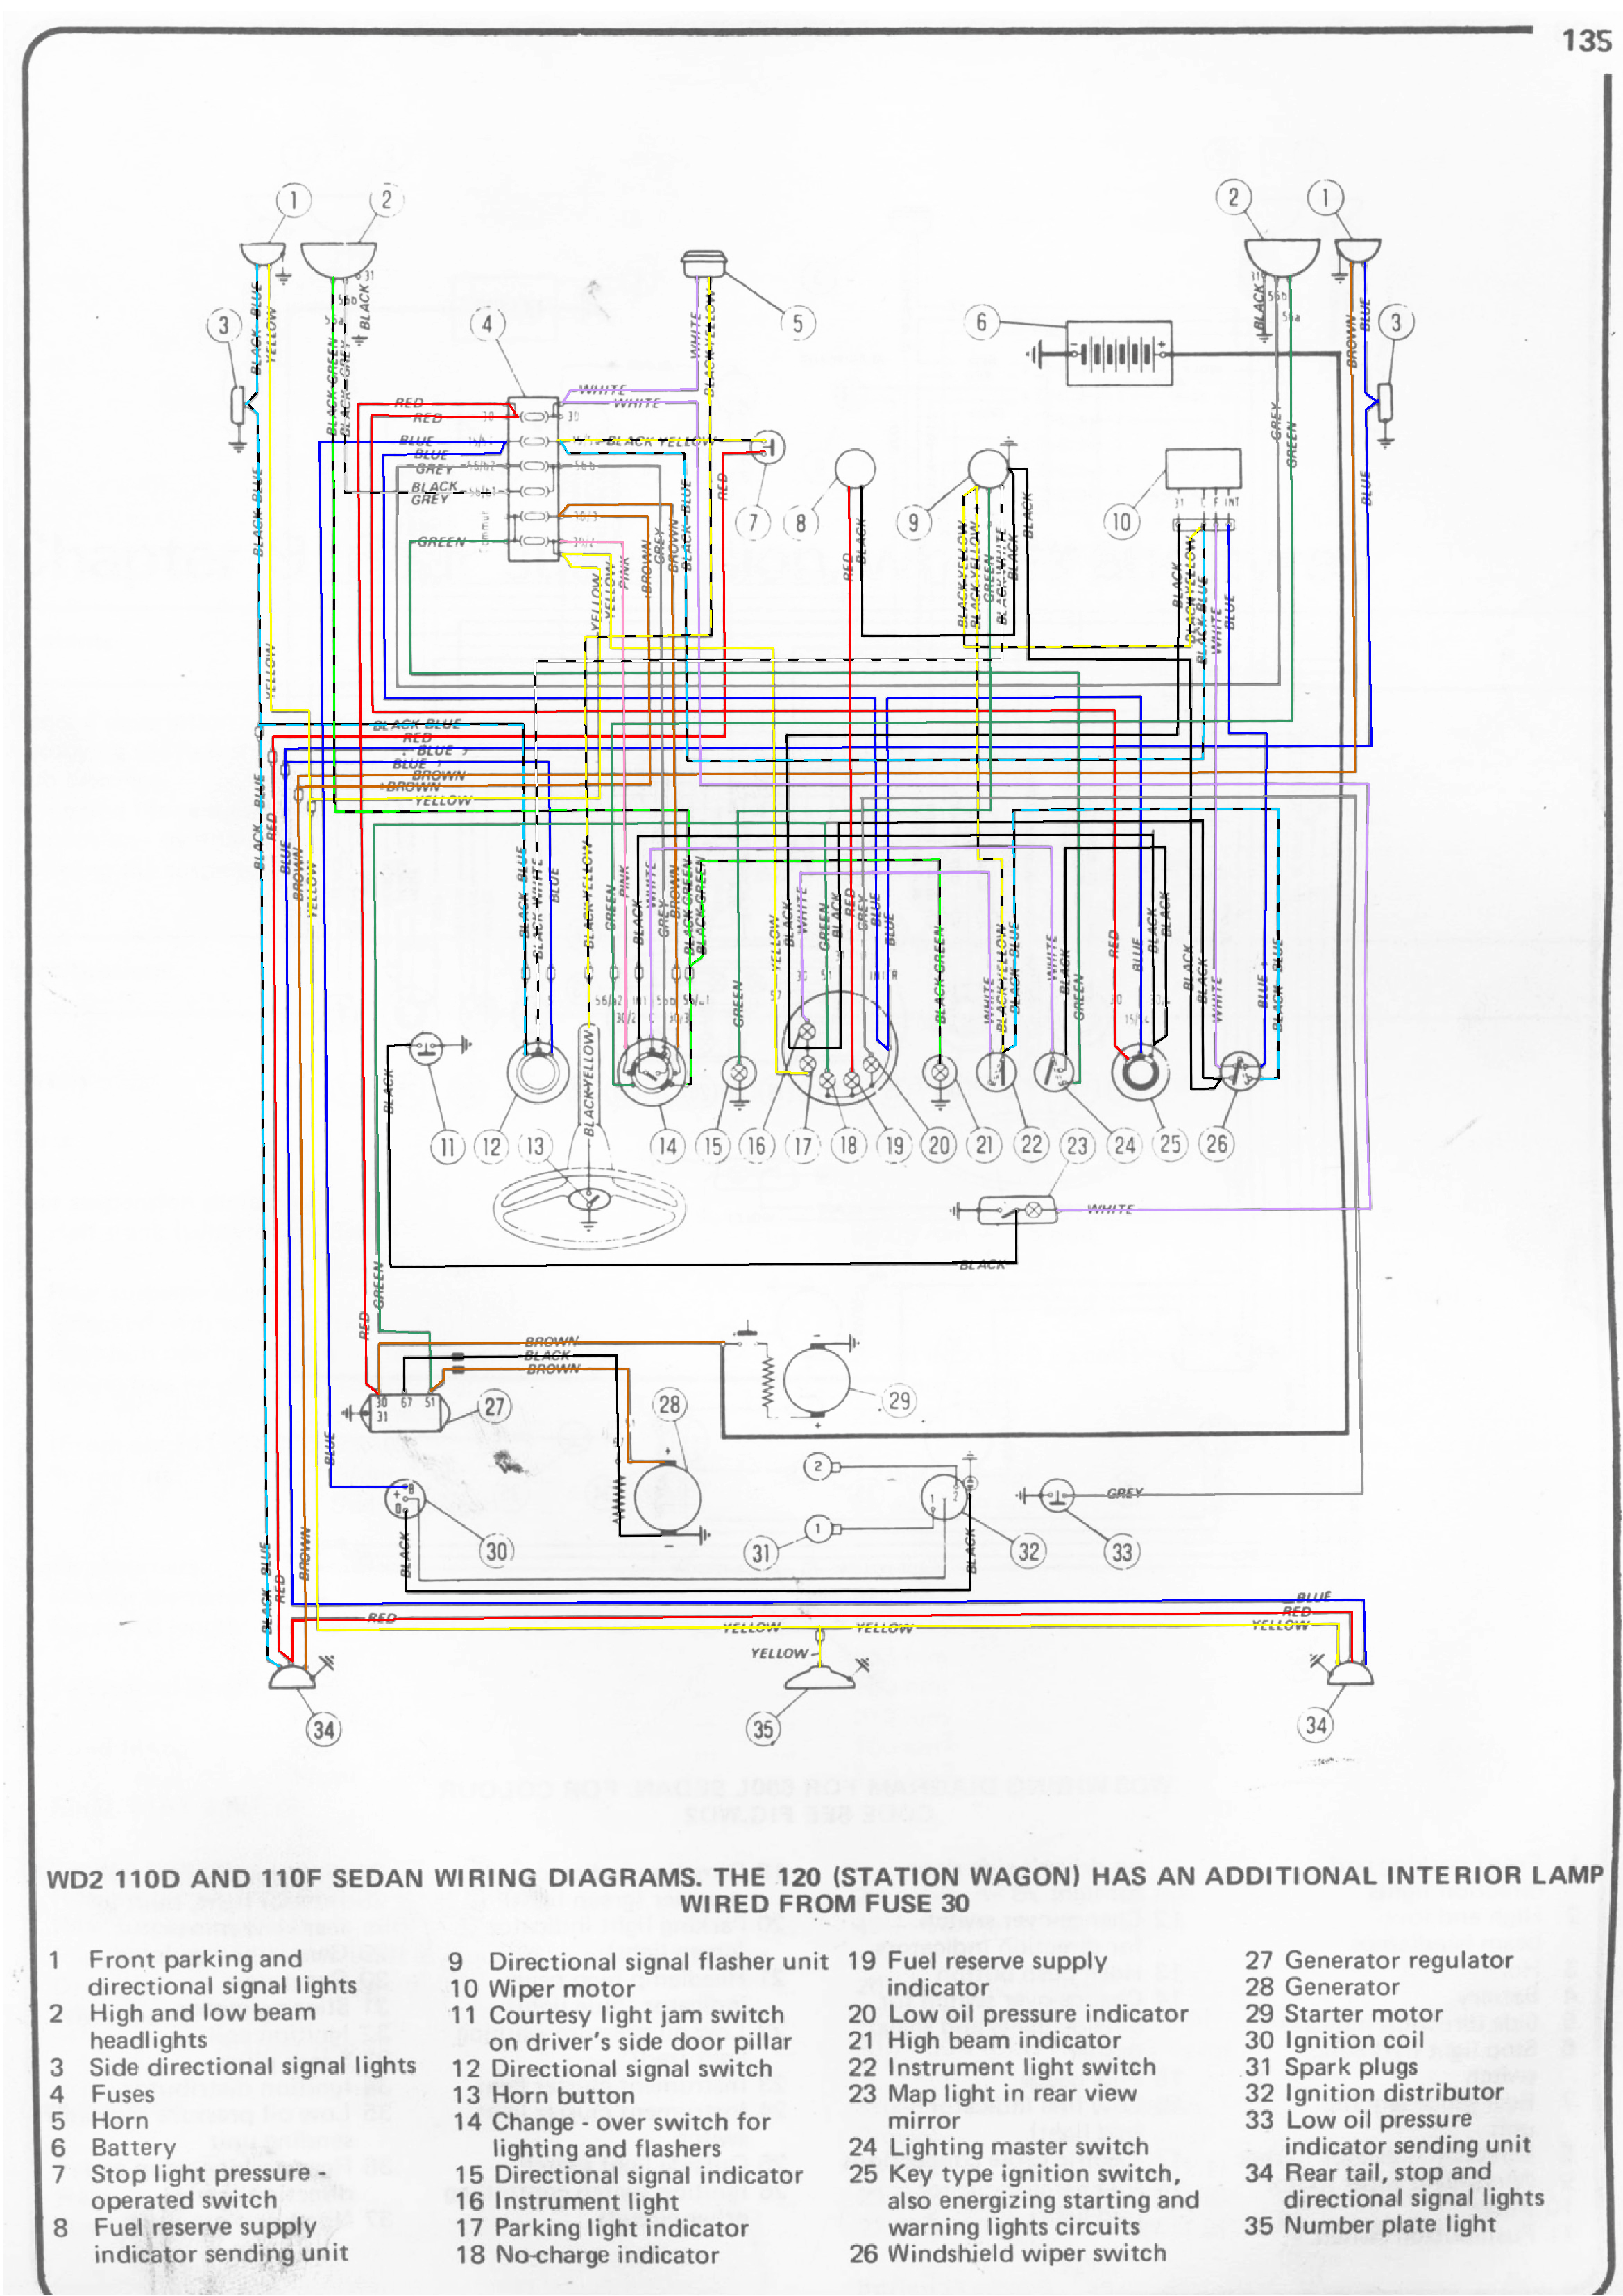 Fiat Car Manuals Wiring Diagrams Pdf Fault Codes Number Plate Light 500 Diagram